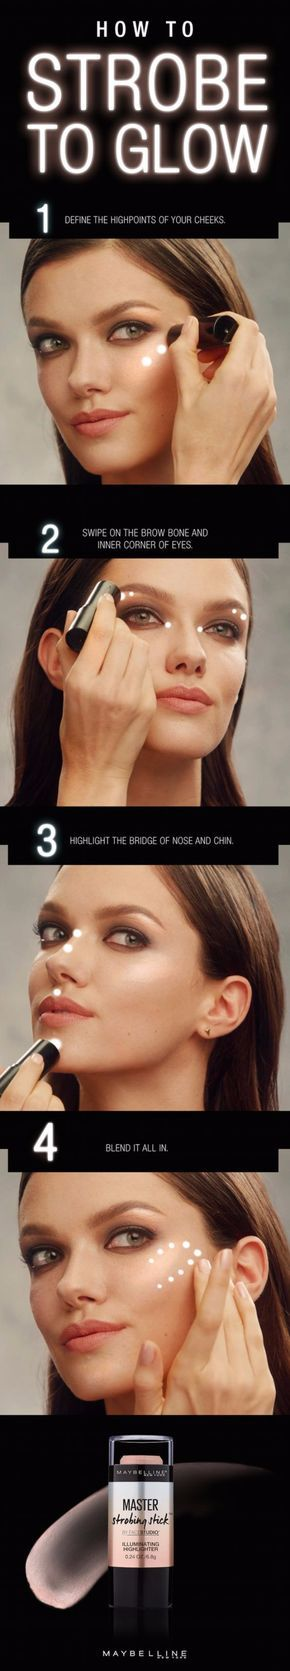 Cool diy makeup hacks for quick and easy beauty ideas strobe to cool diy makeup hacks for quick and easy beauty ideas strobe to glow how solutioingenieria Images